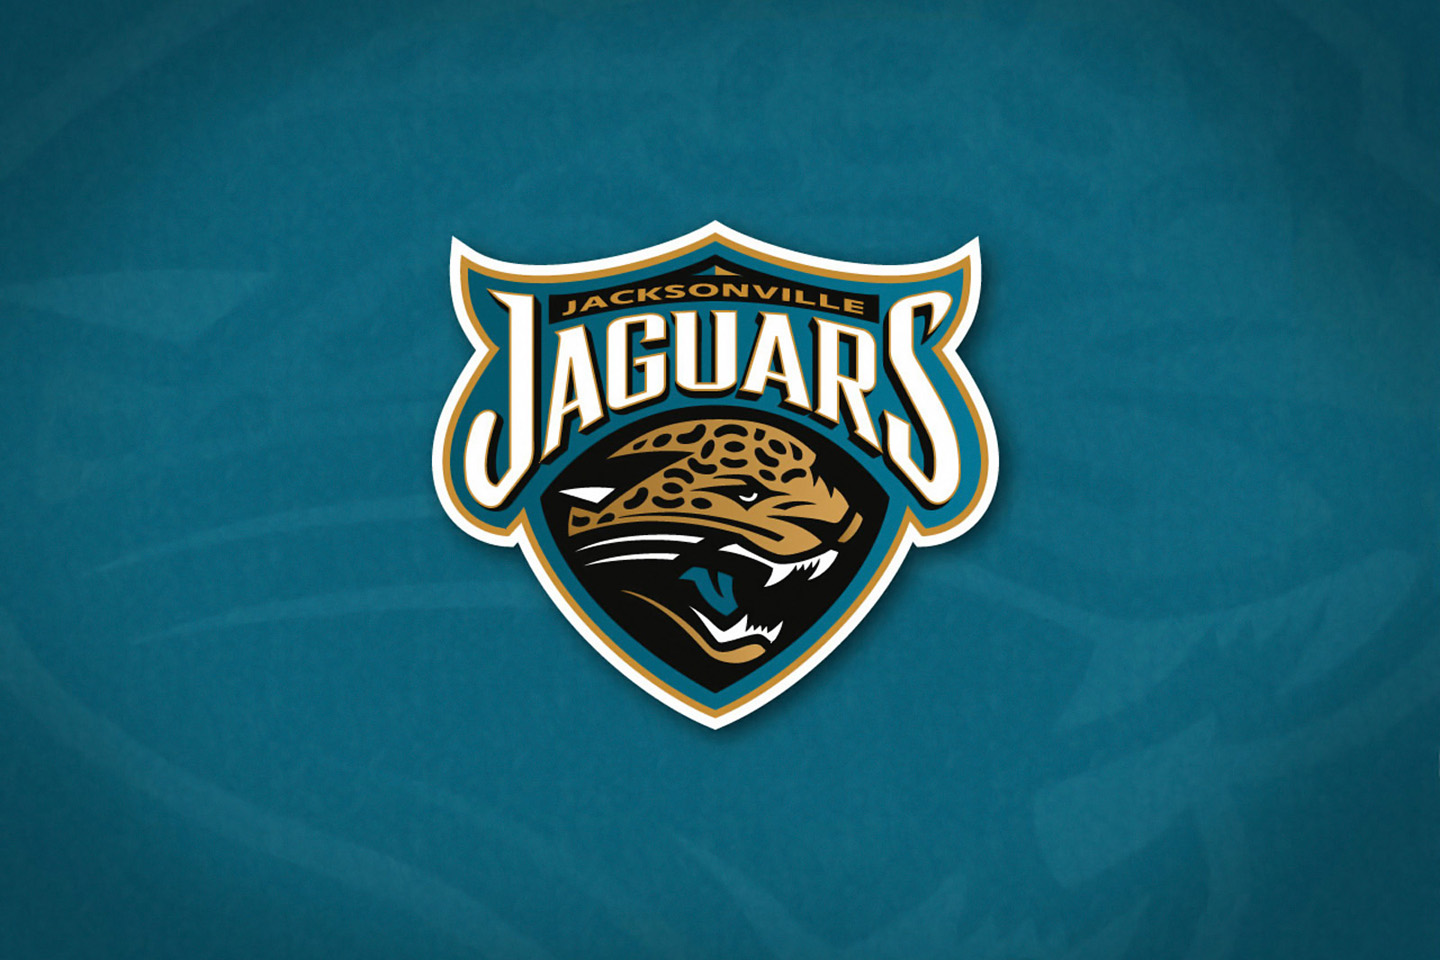 with j jacksonville jaguars logo history jacksonville jaguars history. Cars Review. Best American Auto & Cars Review